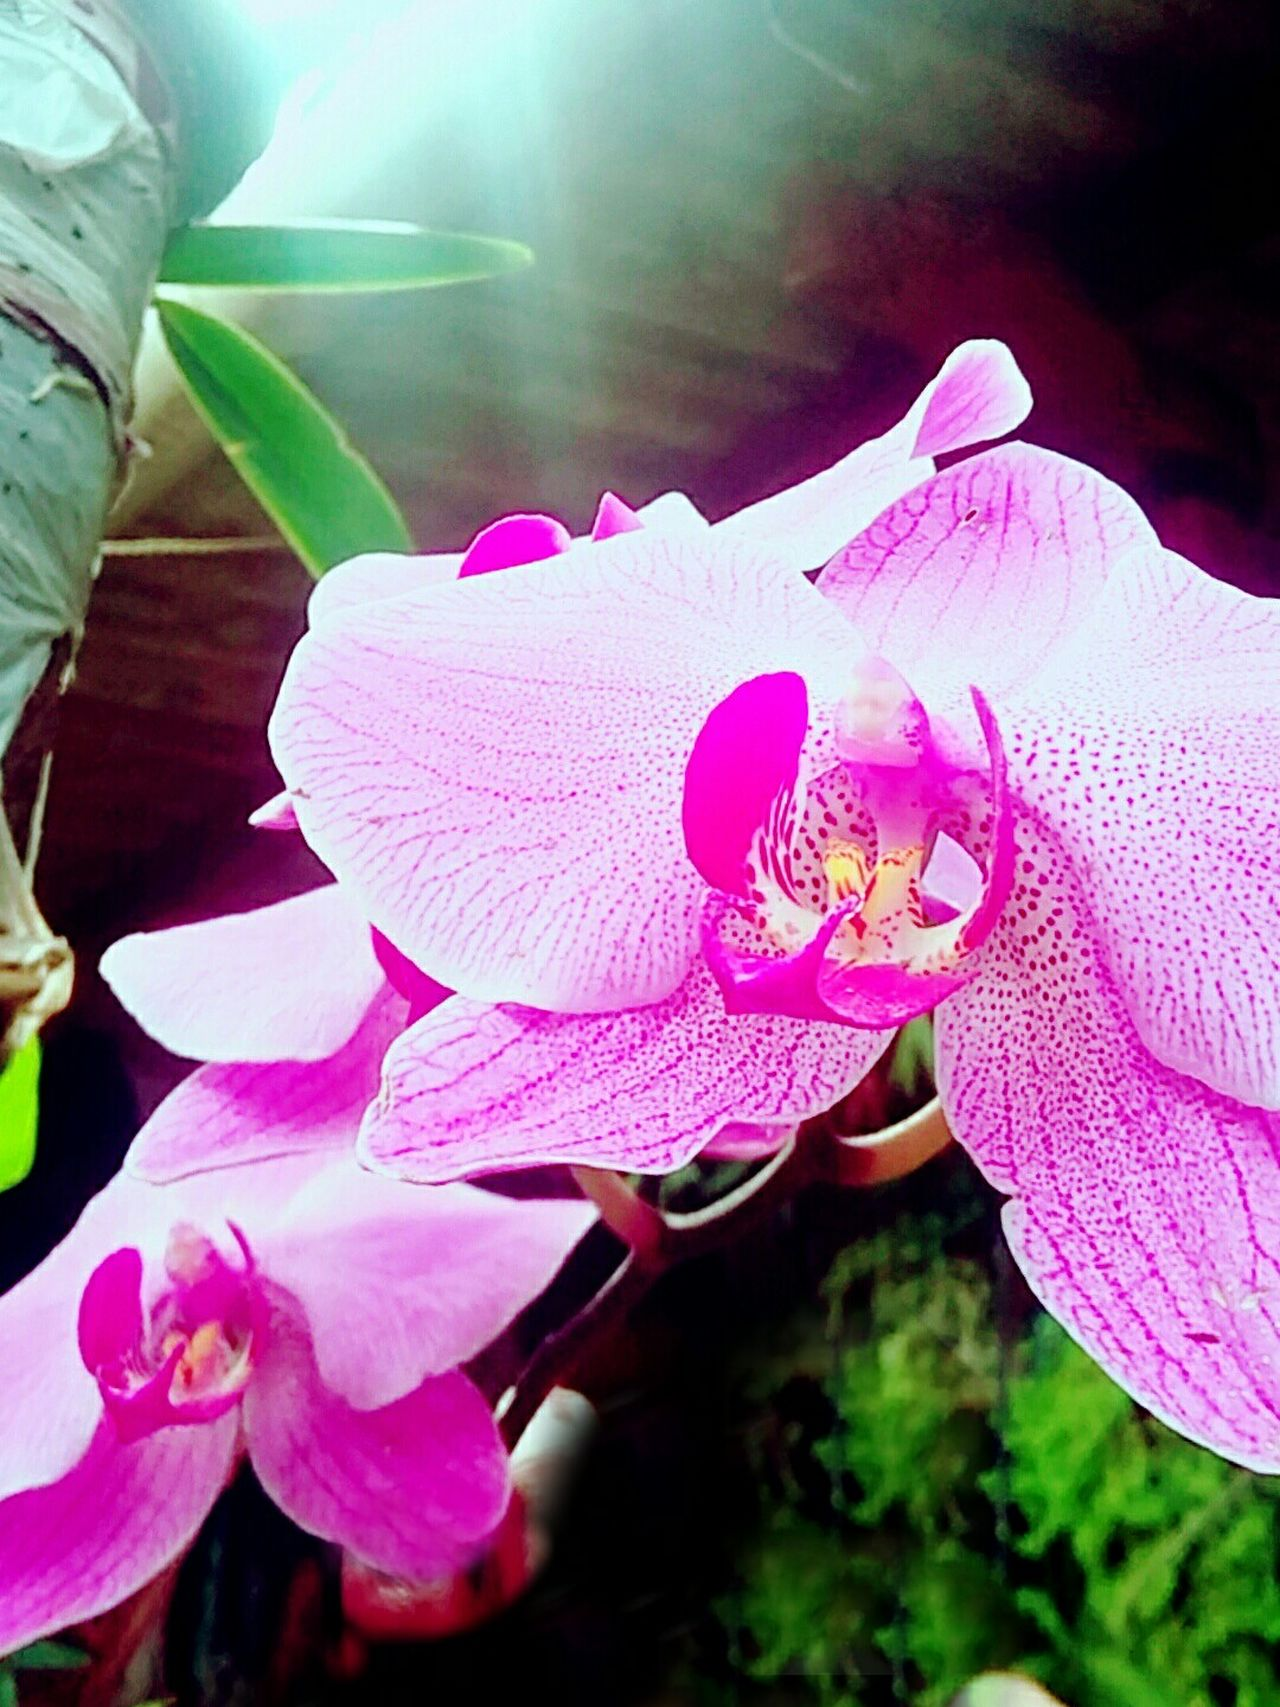 OrquideaBambu Flower Photography Spring Flowers Pinkpurpletheme First Eyeem Photo